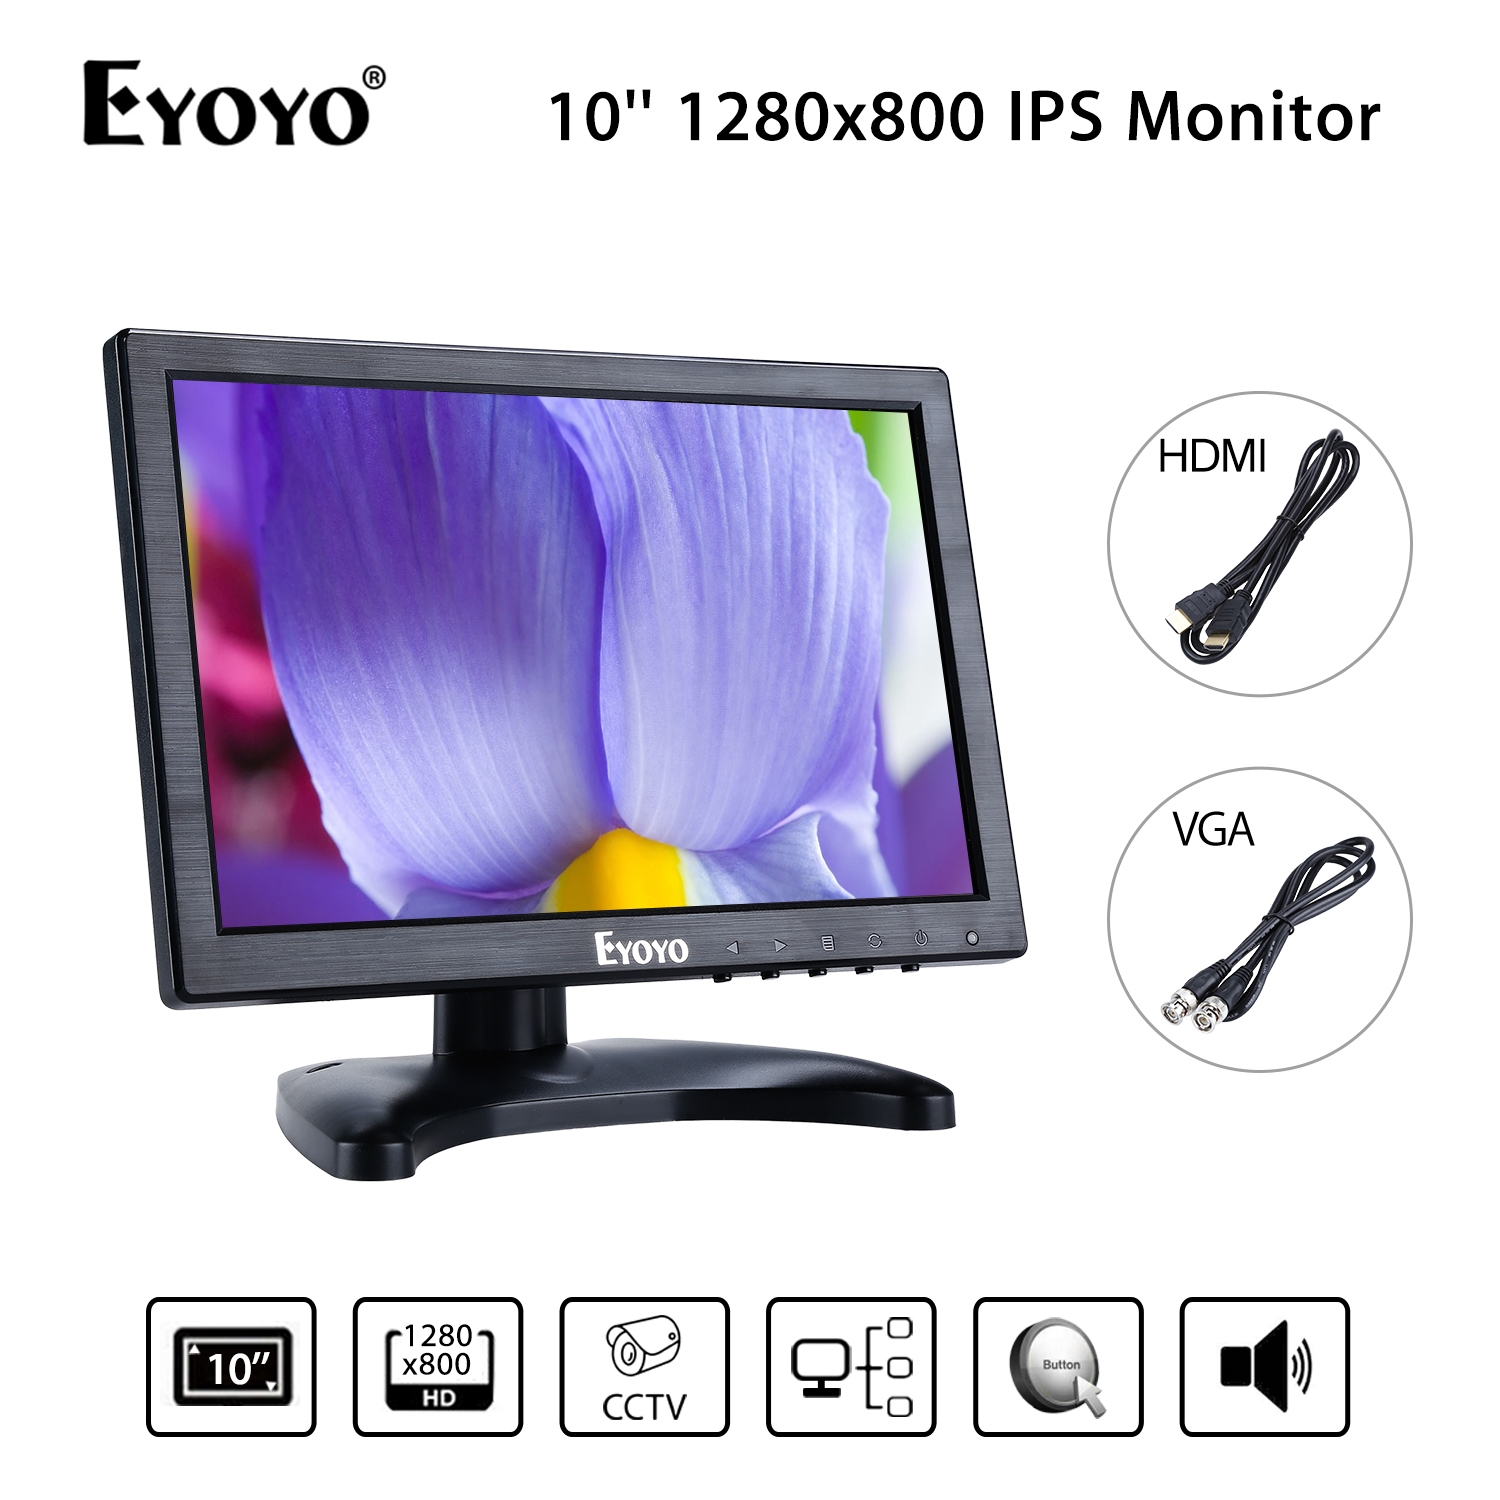 EYOYO H1016 IPS FHD 10'' Display 1280p 350cd/m2 VGA BNC USB Video Audio HDMI Monitor Black For CCTV DVD PC Laptop DVR CCD Camera us au standard 2 gang 1 way glass panel smart touch light wall switch remote controller white black gold